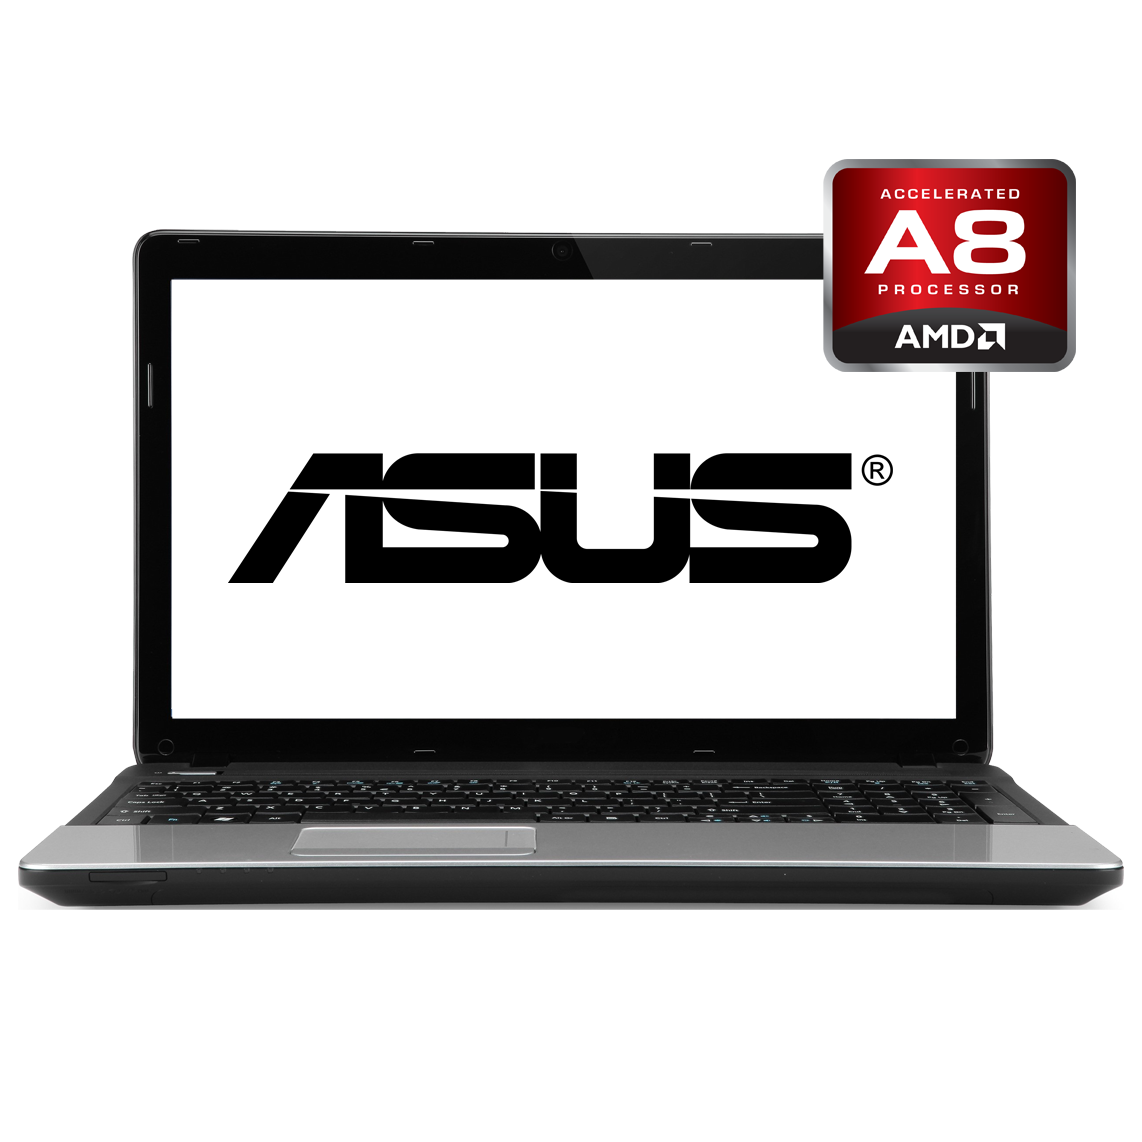 ASUS - 15.6 inch AMD A8